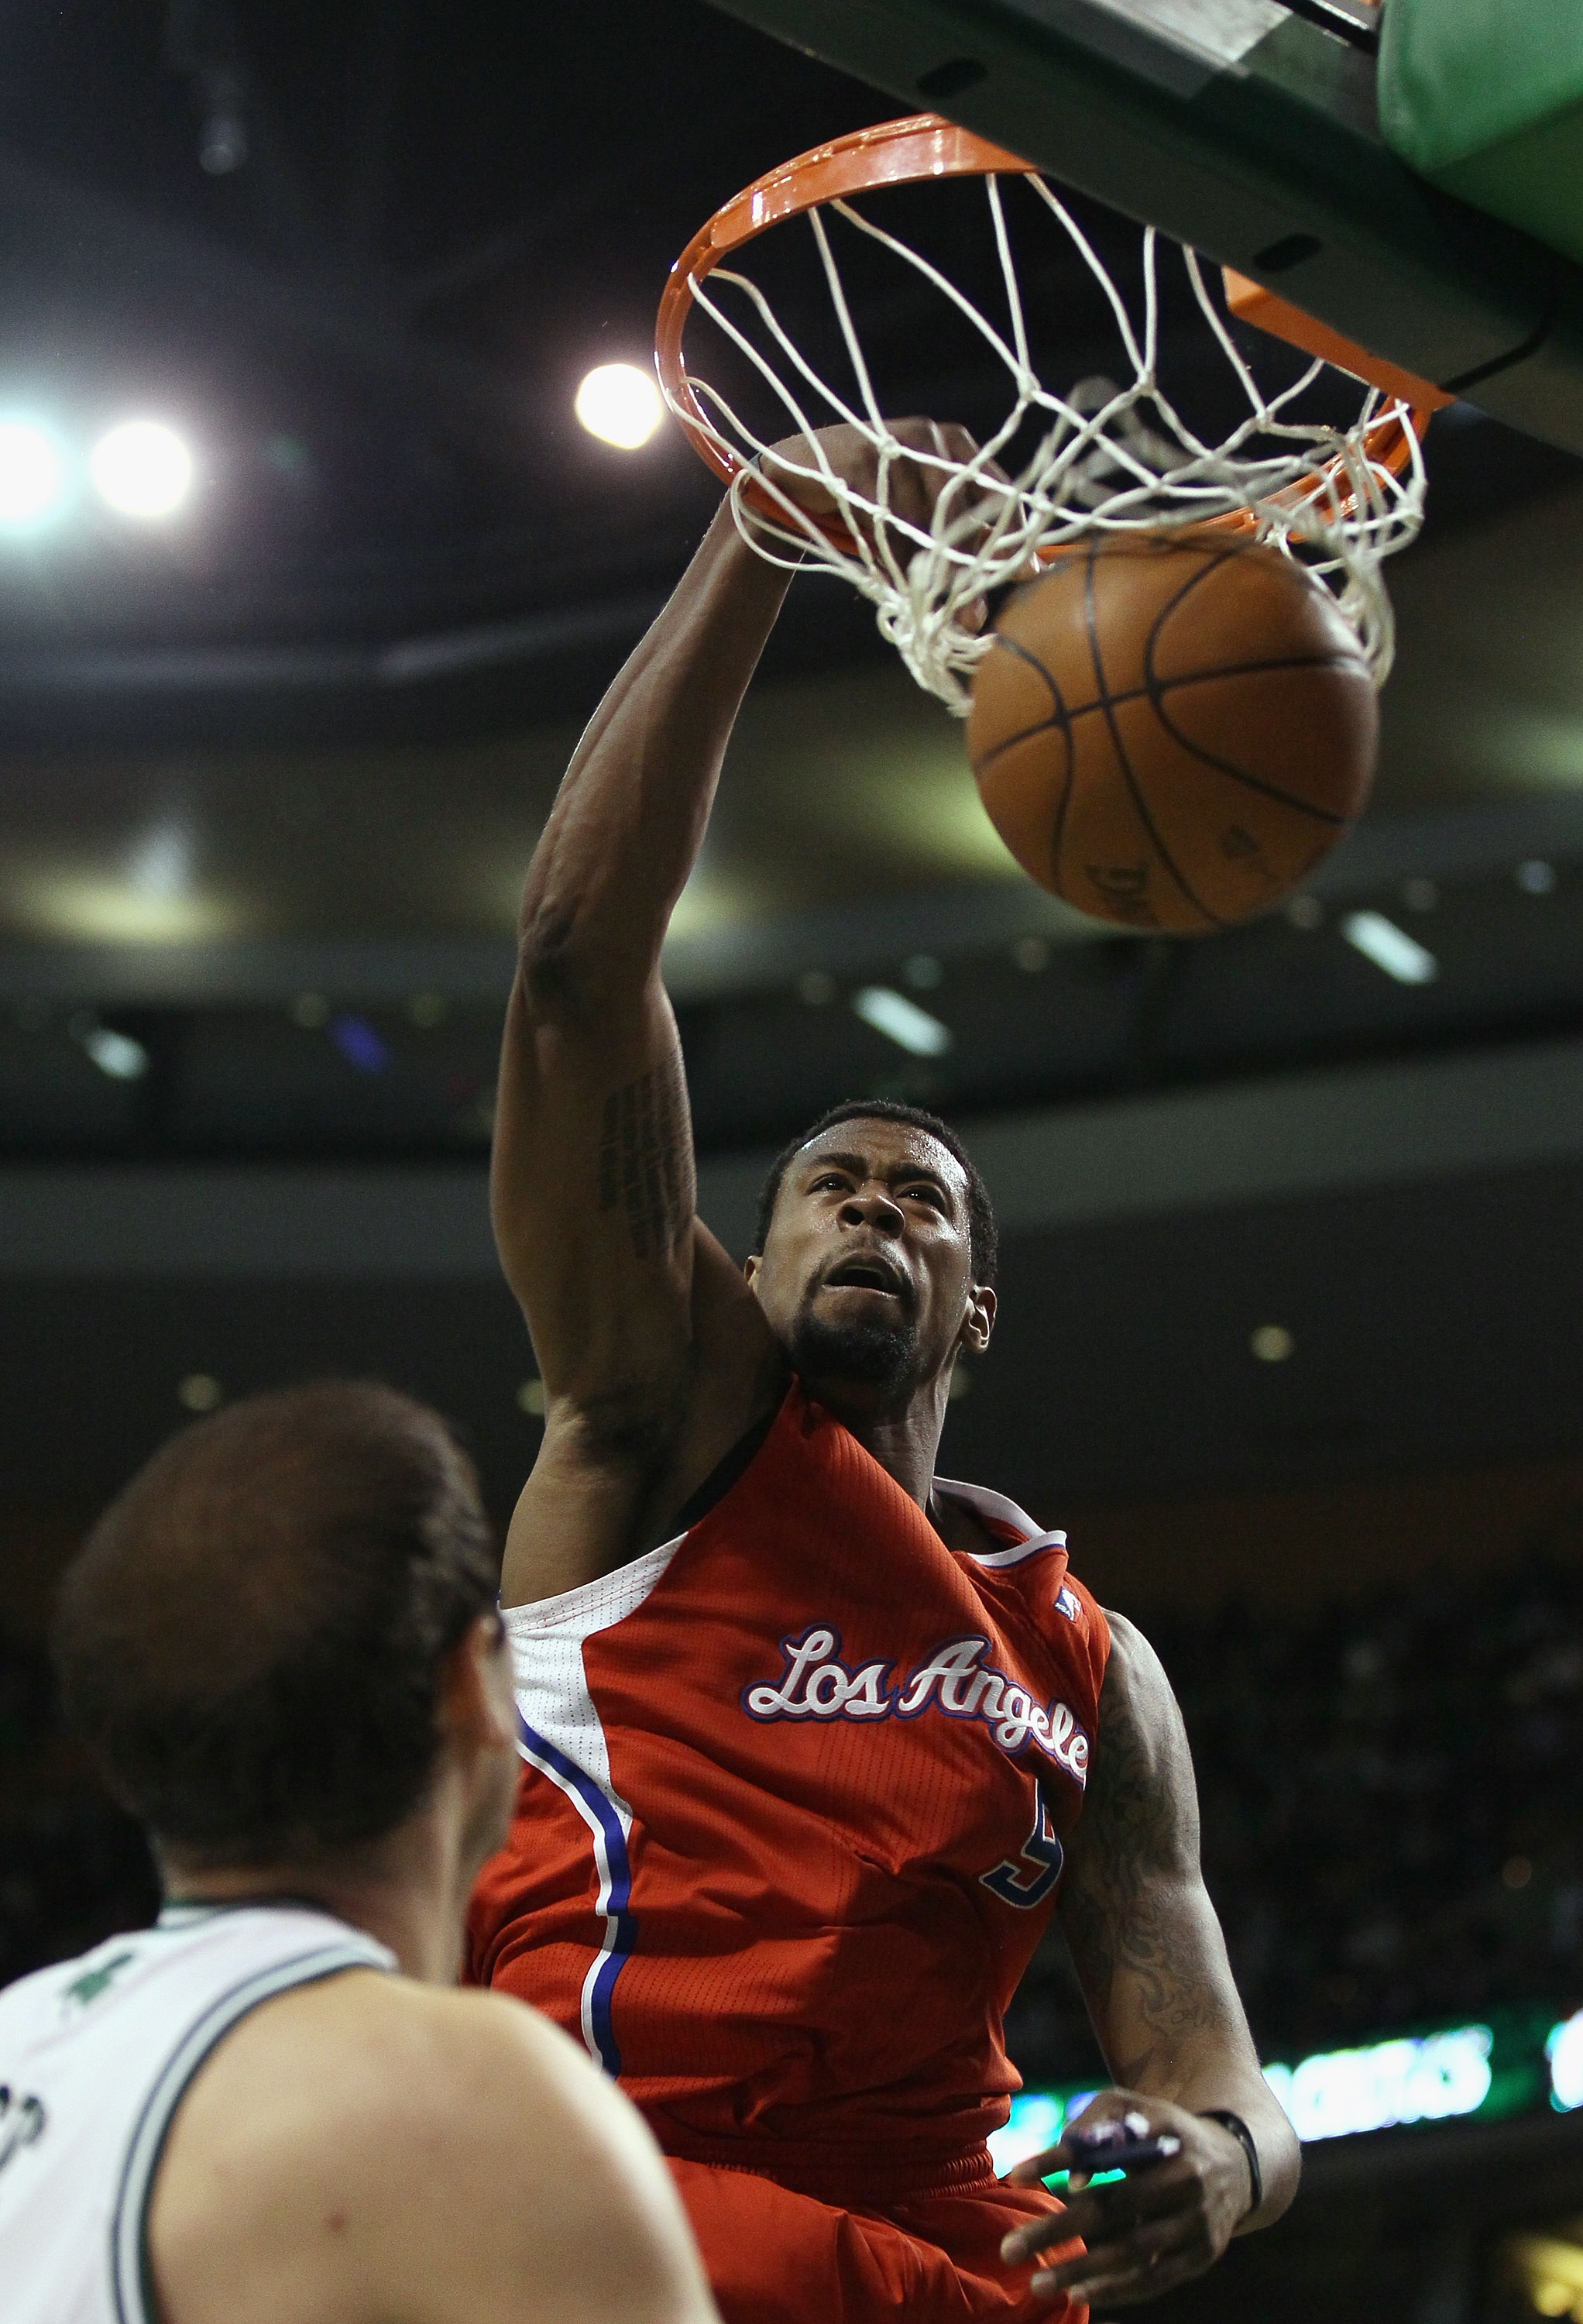 BOSTON, MA - MARCH 09:  DeAndre Jordan #9 of the Los Angeles Clippers dunks the ball as Nenad Krstic #4 of the Boston Celtics defends on March 9, 2011 at the TD Garden in Boston, Massachusetts. The Los Angeles Clippers defeated the Boston Celtics 108-103.